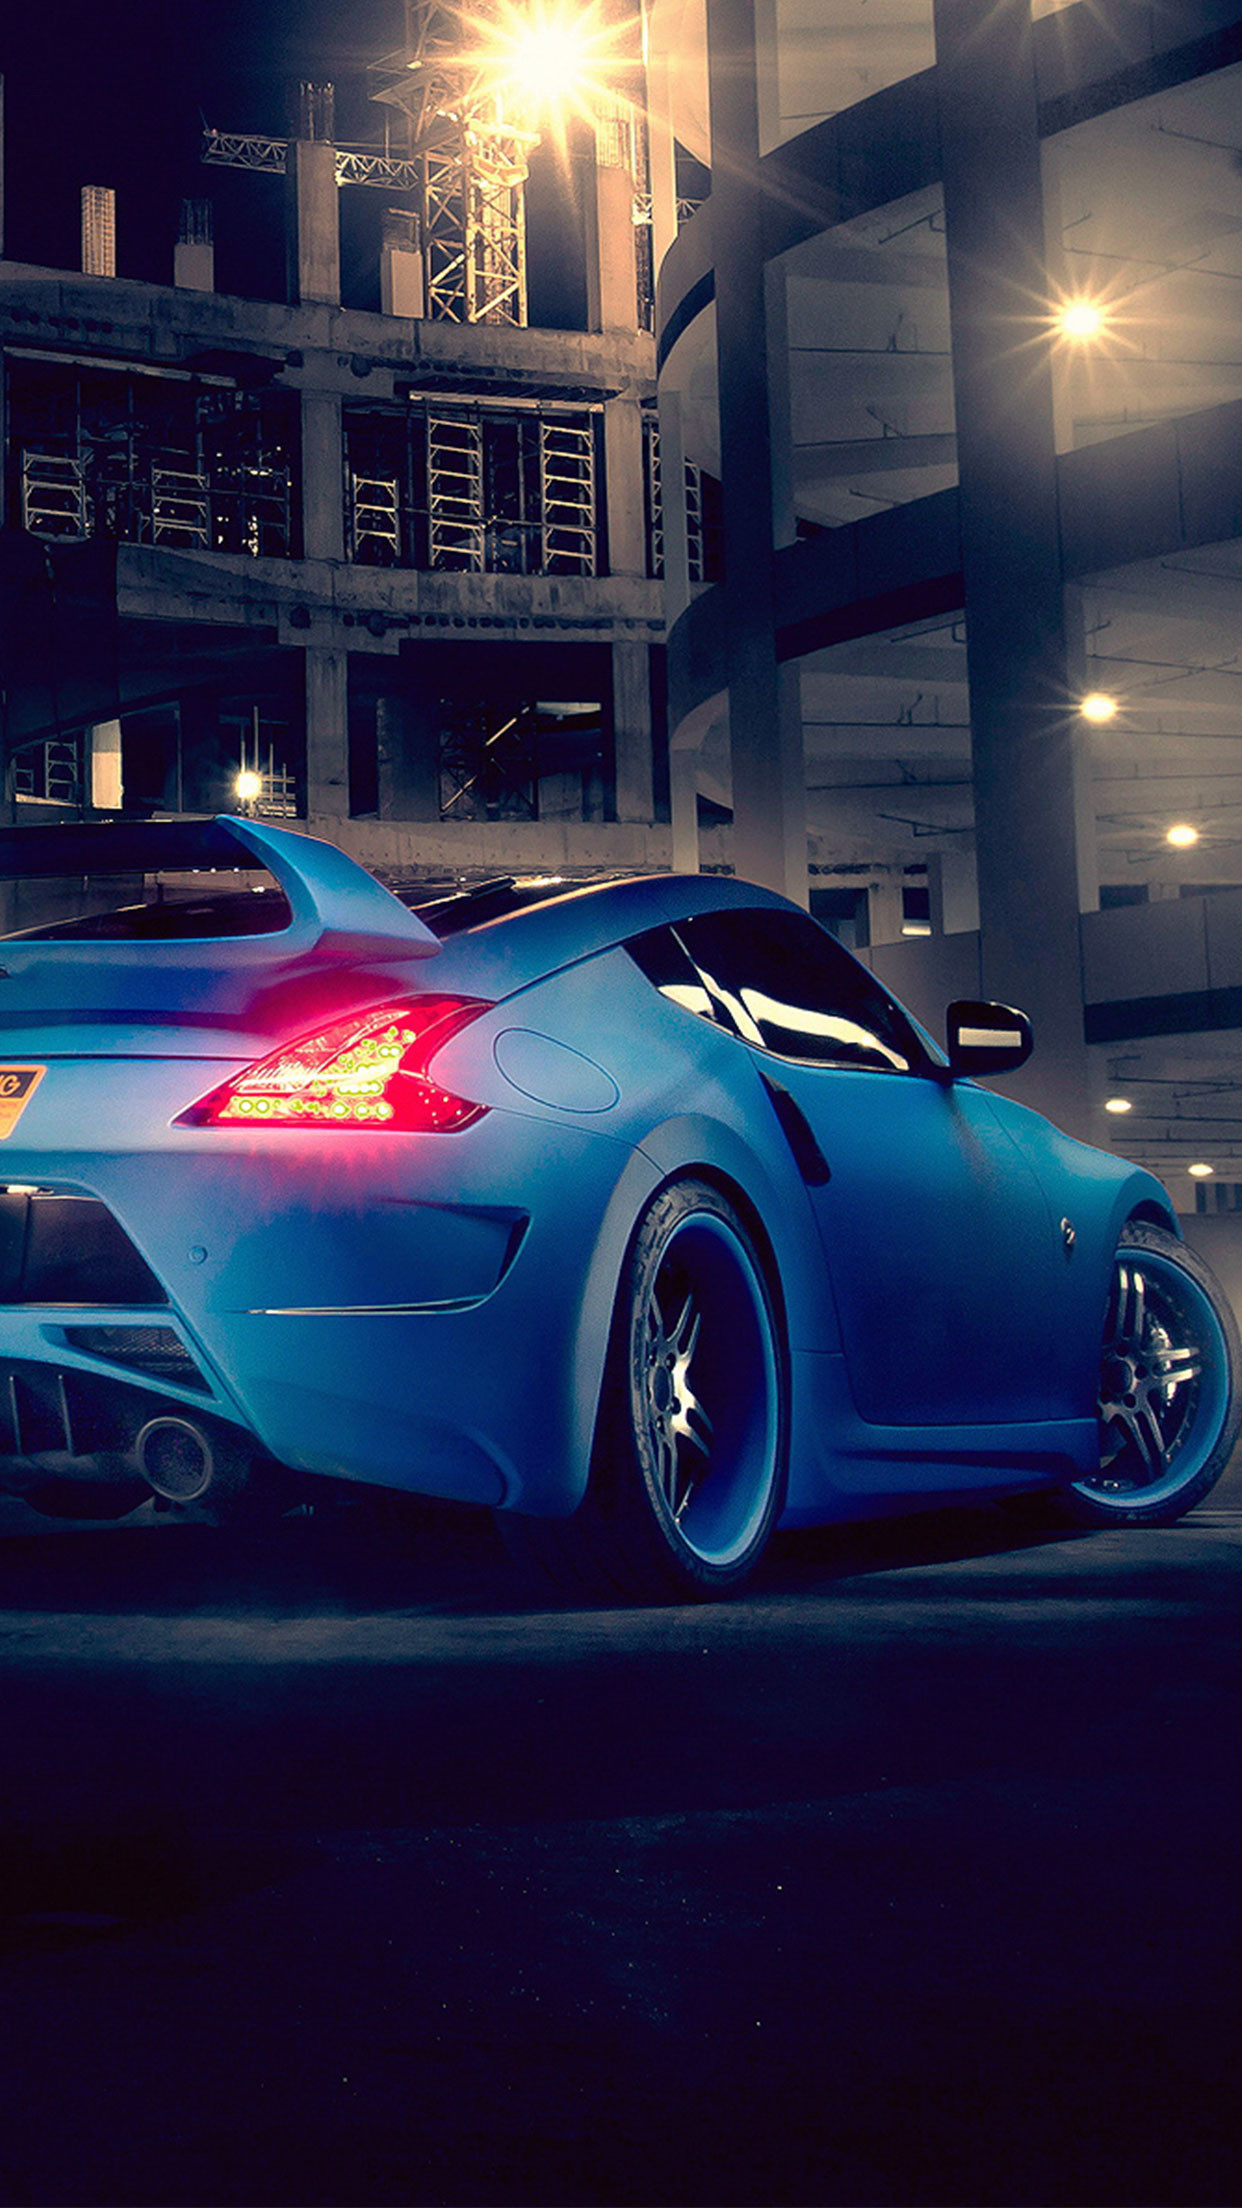 Nissan 370z car wallpaper #Iphone #android #nissan #car #wallpaper more like